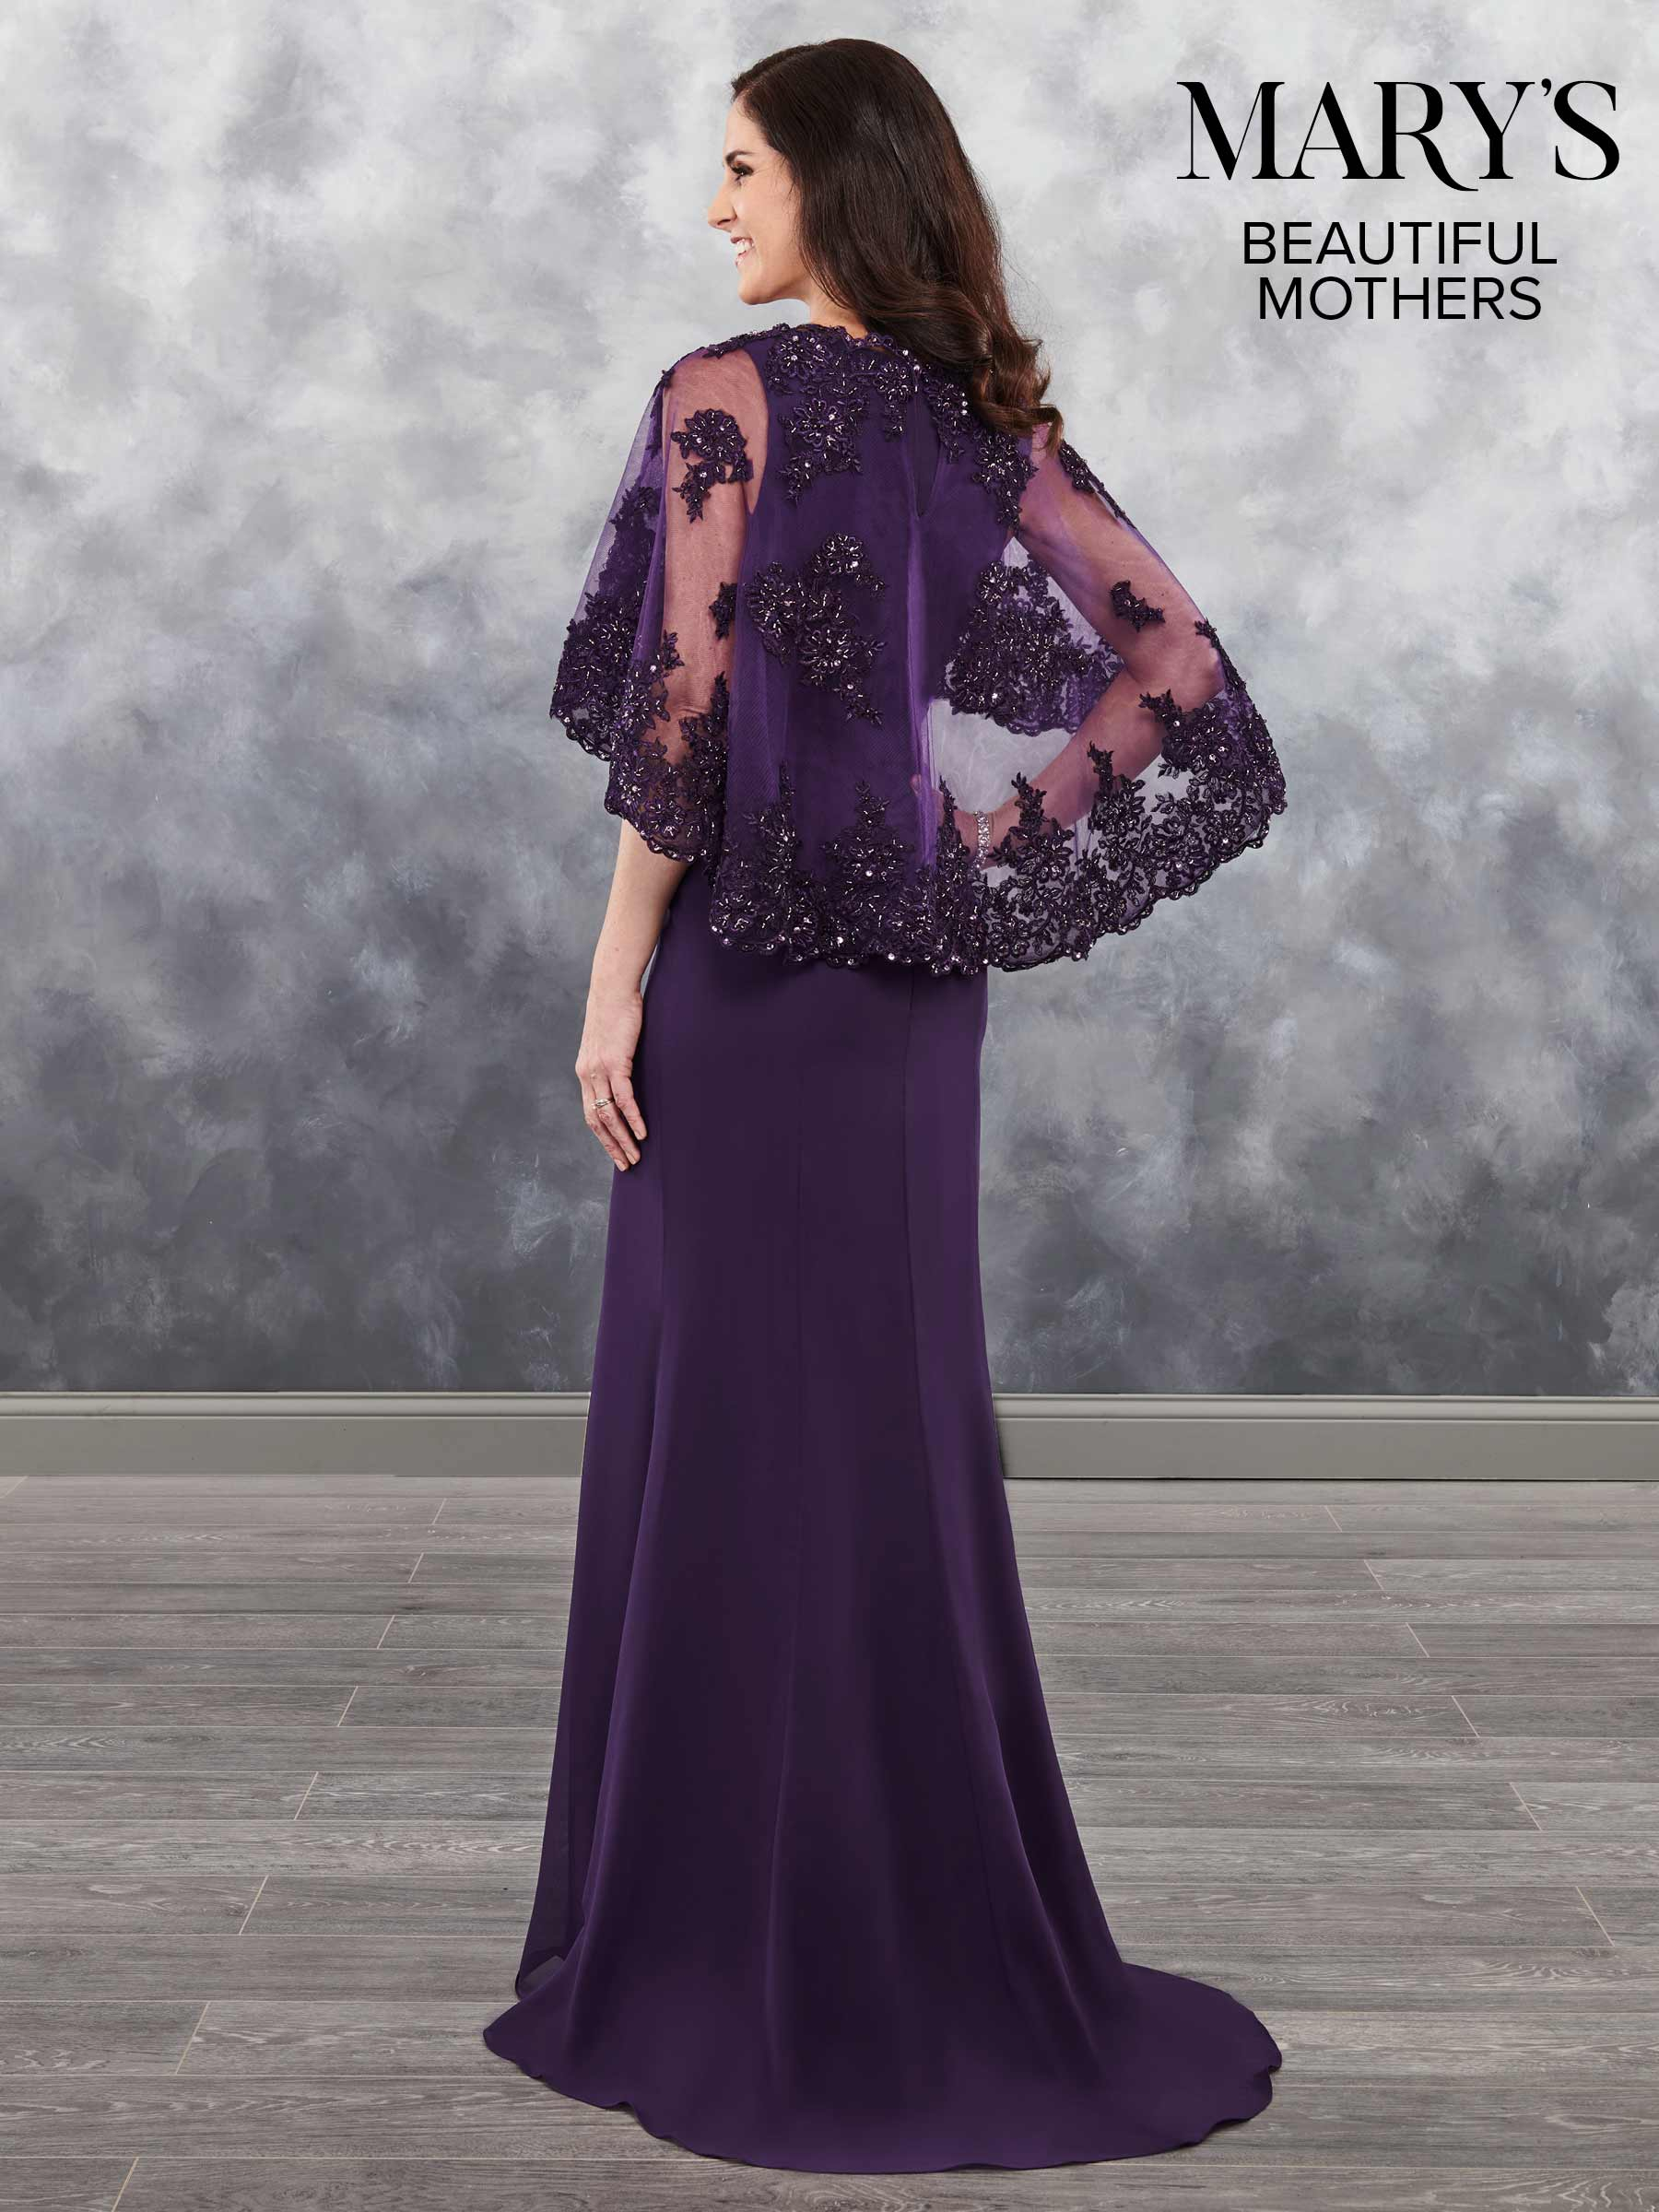 Mother Of The Bride Dresses | Beautiful Mothers | Style - MB8027